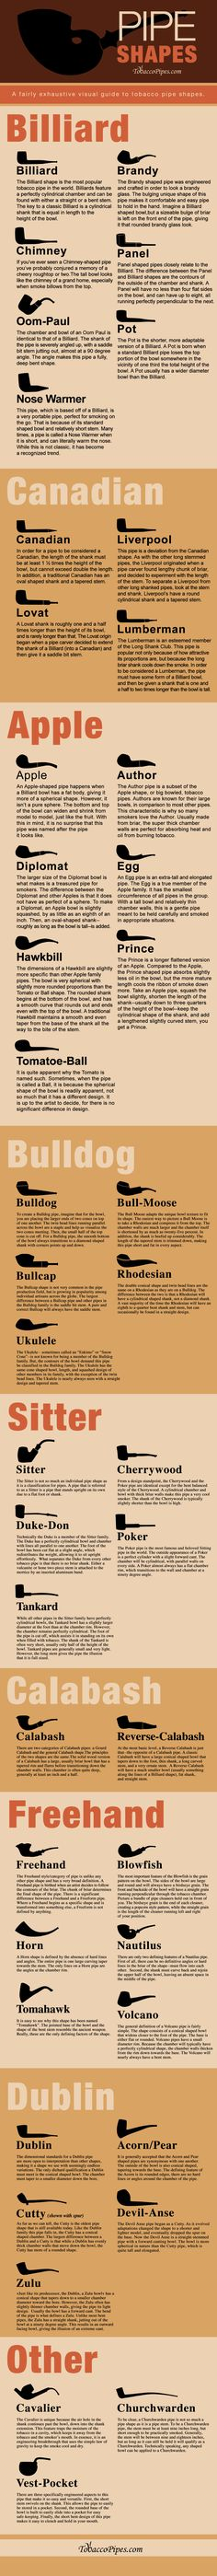 Tobacco Pipe Shape Infographic